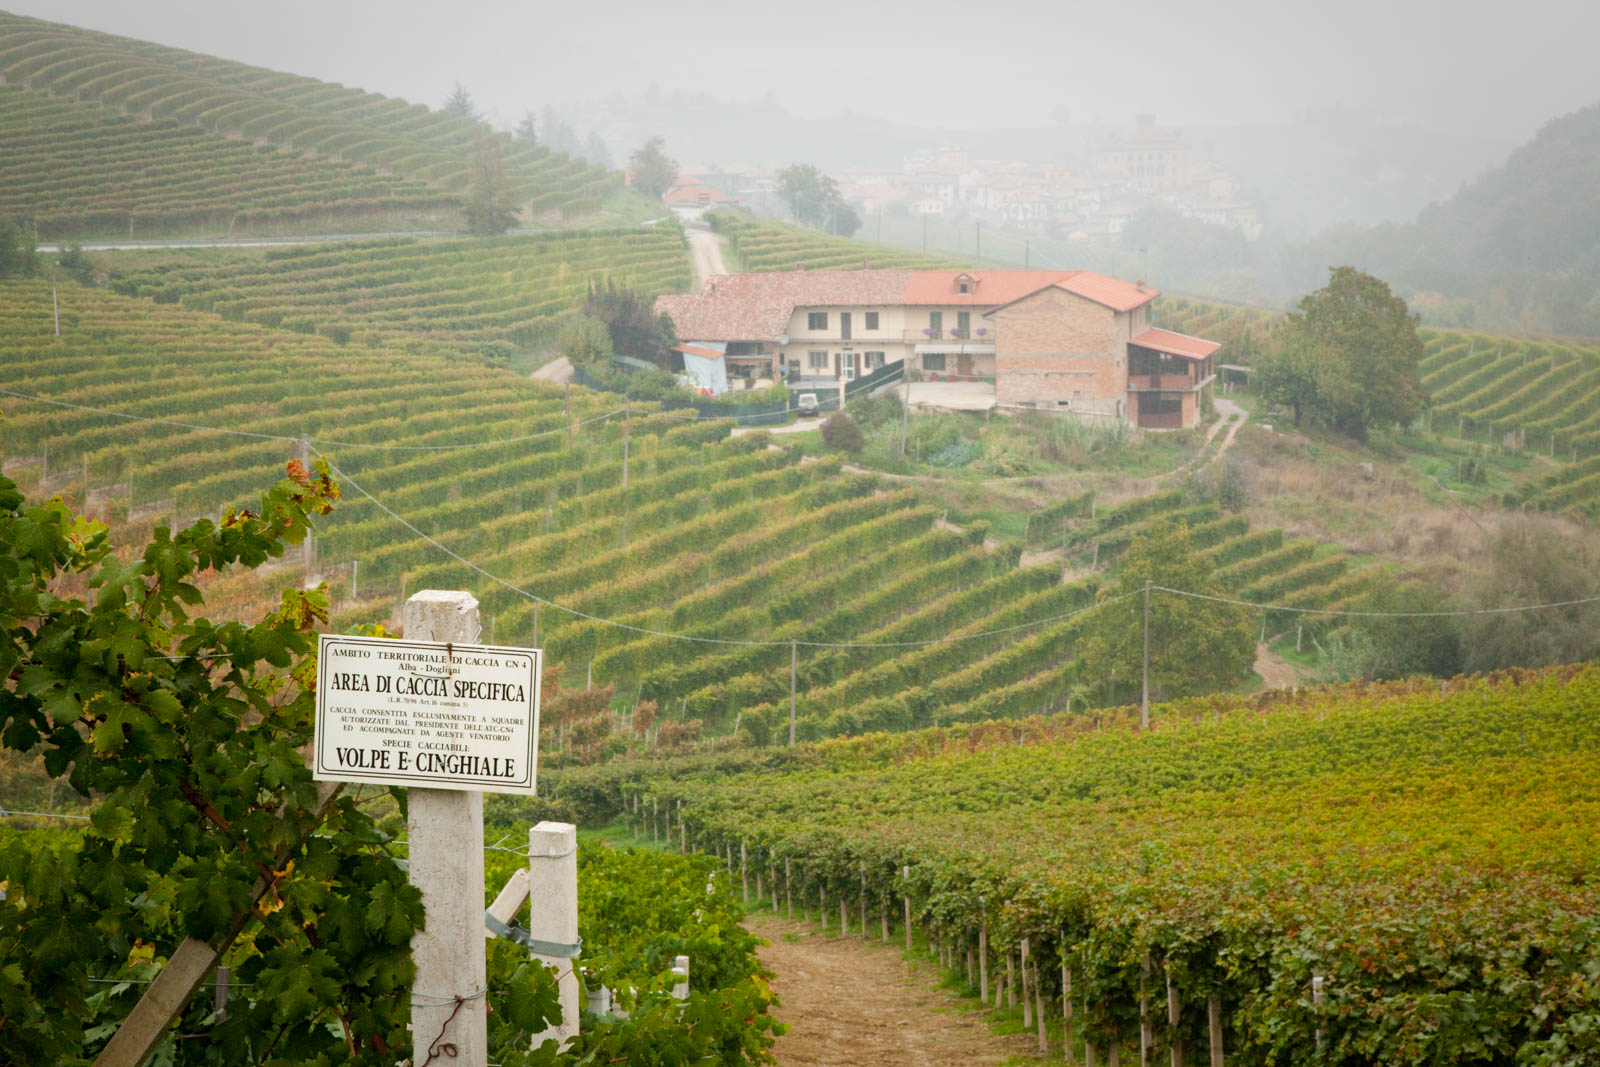 The Ravera Vineyard (Cru) outside Barolo, Italy. ©Kevin Day